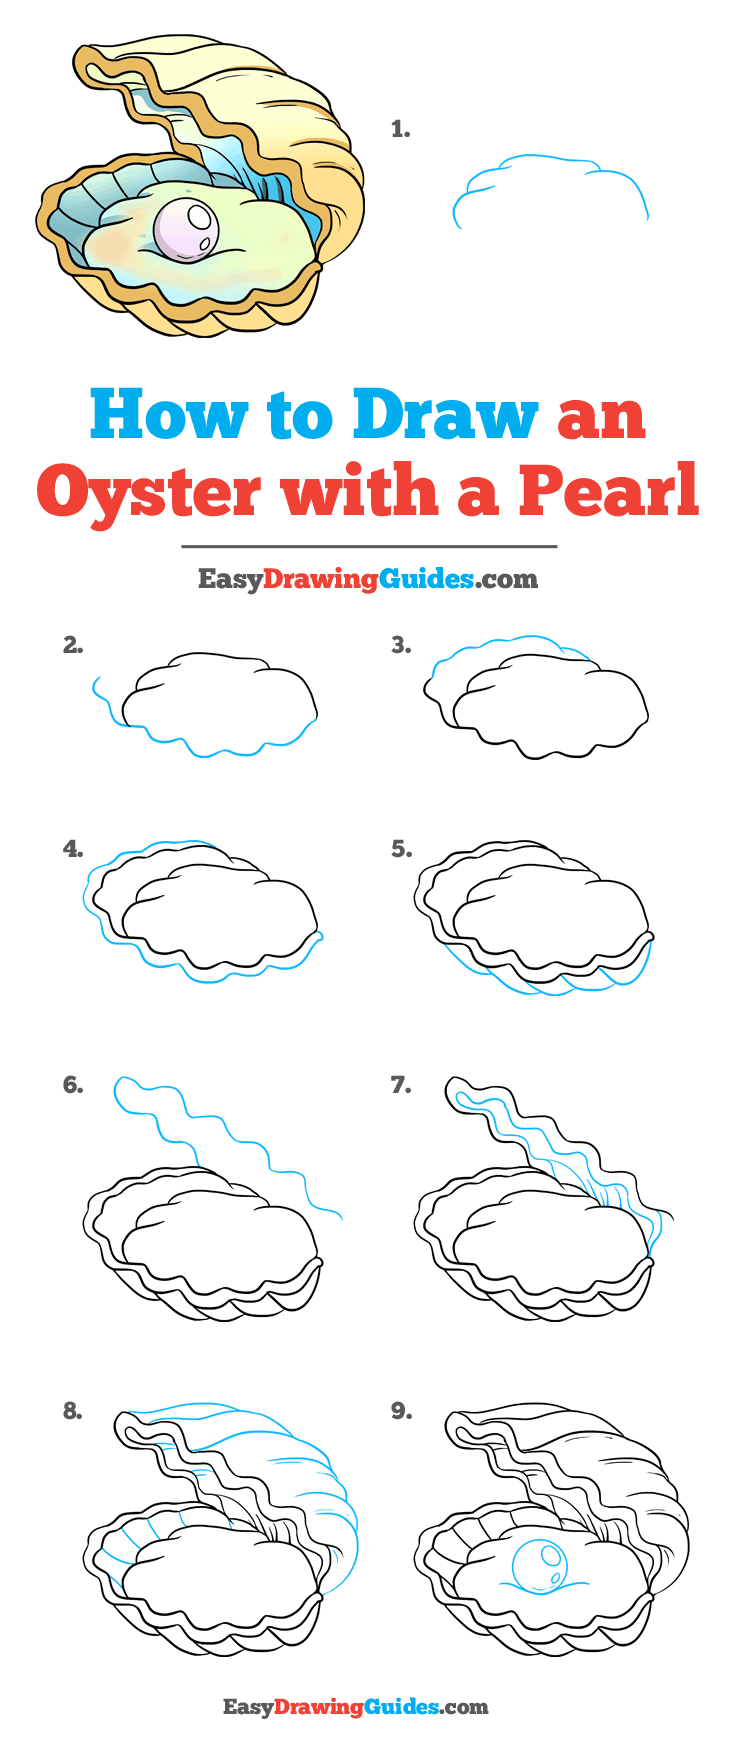 How to Draw Oyster with a Pearl